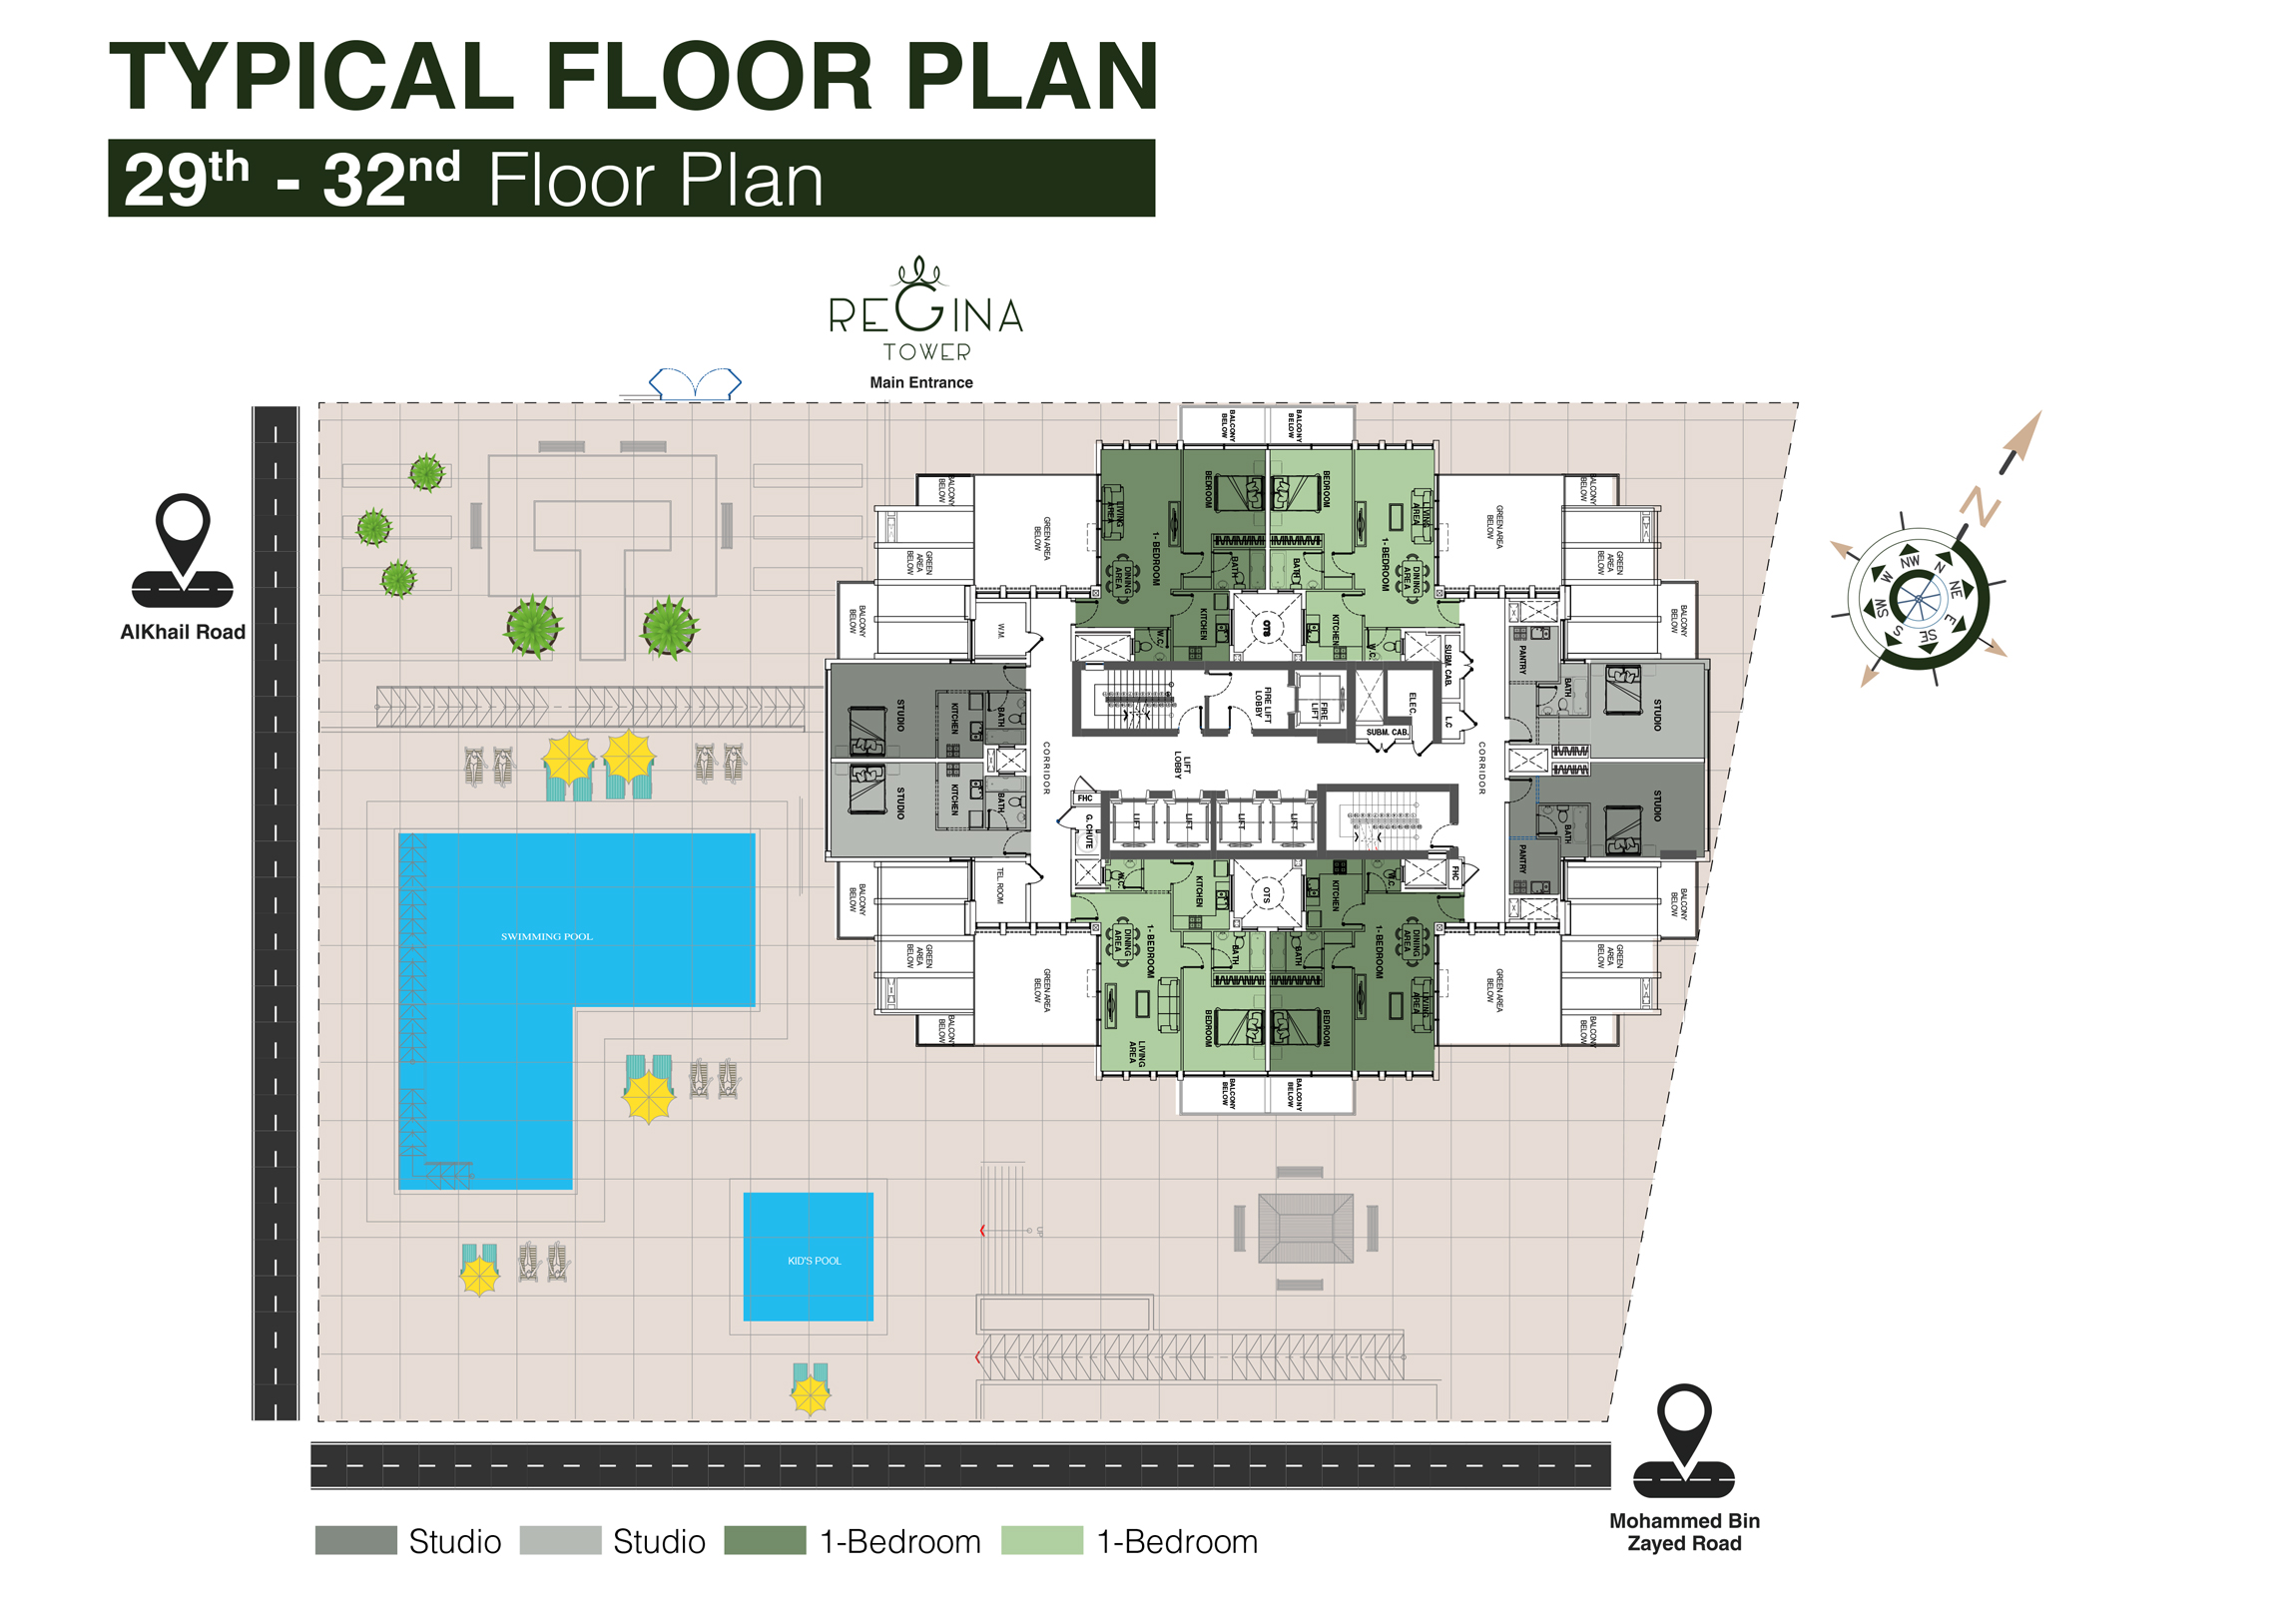 Typical Floor Plan 29th to 32nd Floor